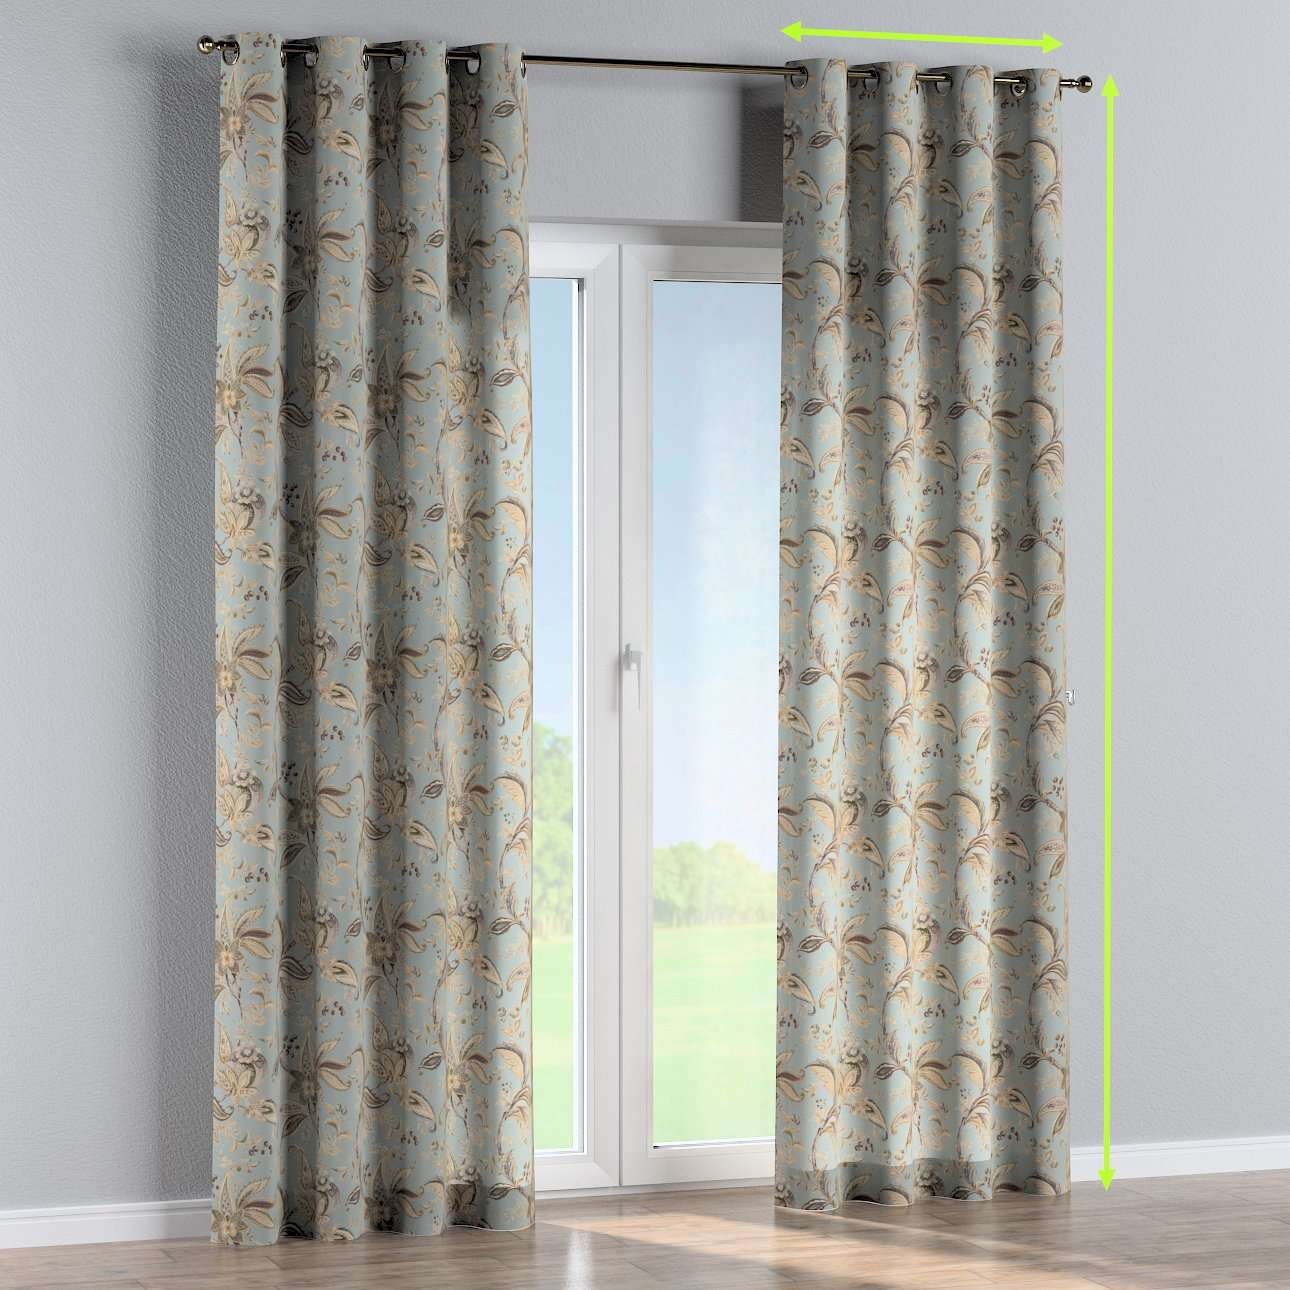 Eyelet curtain in collection Gardenia, fabric: 142-18